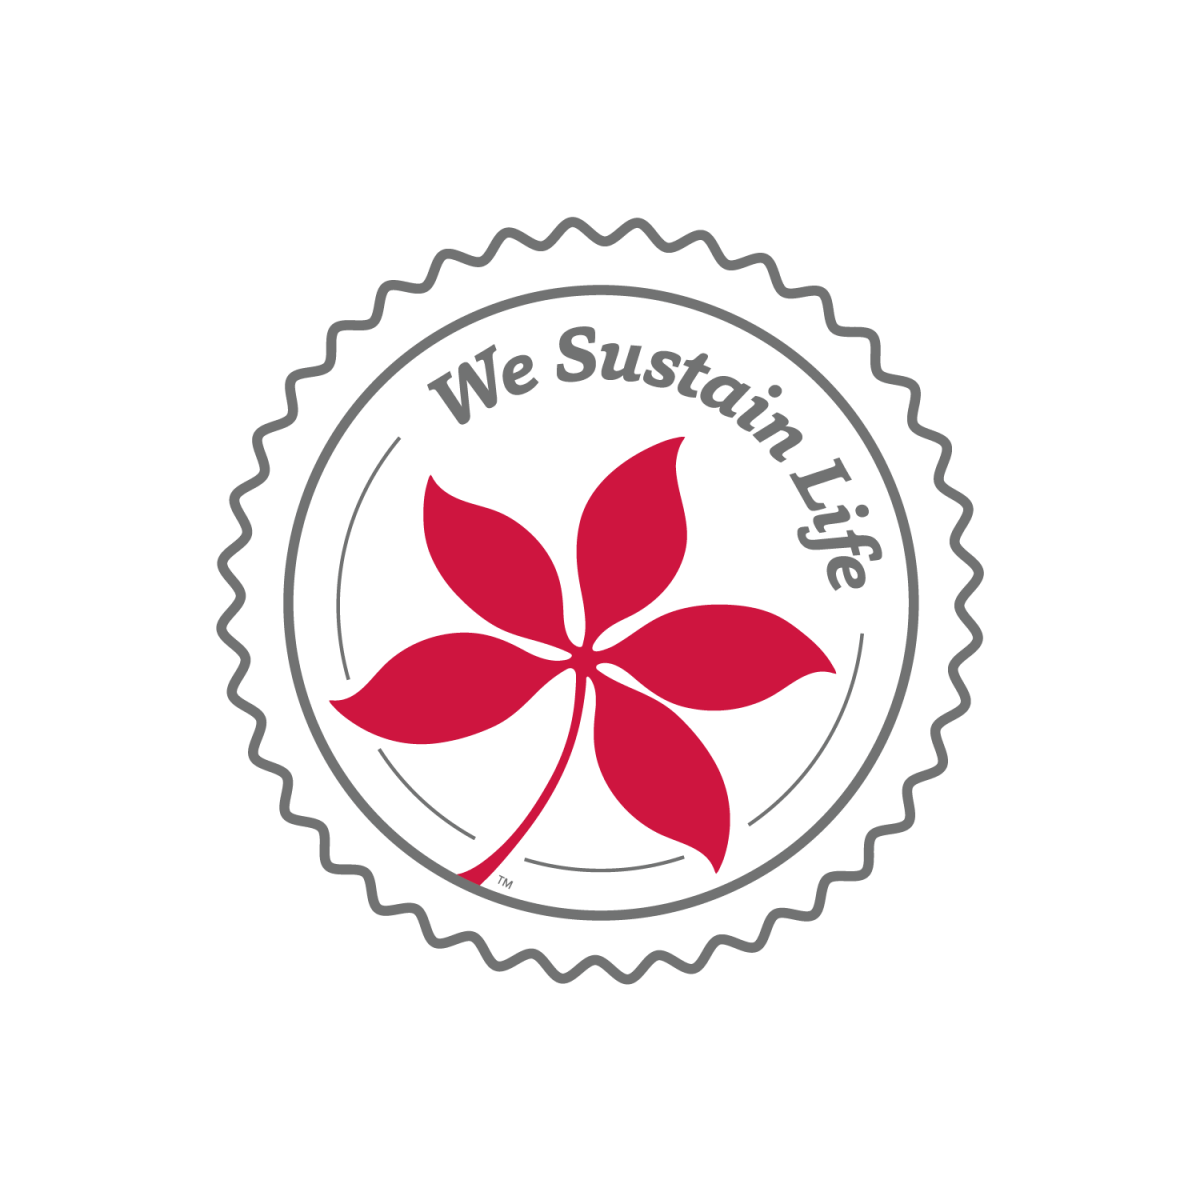 We Sustain Life Badge